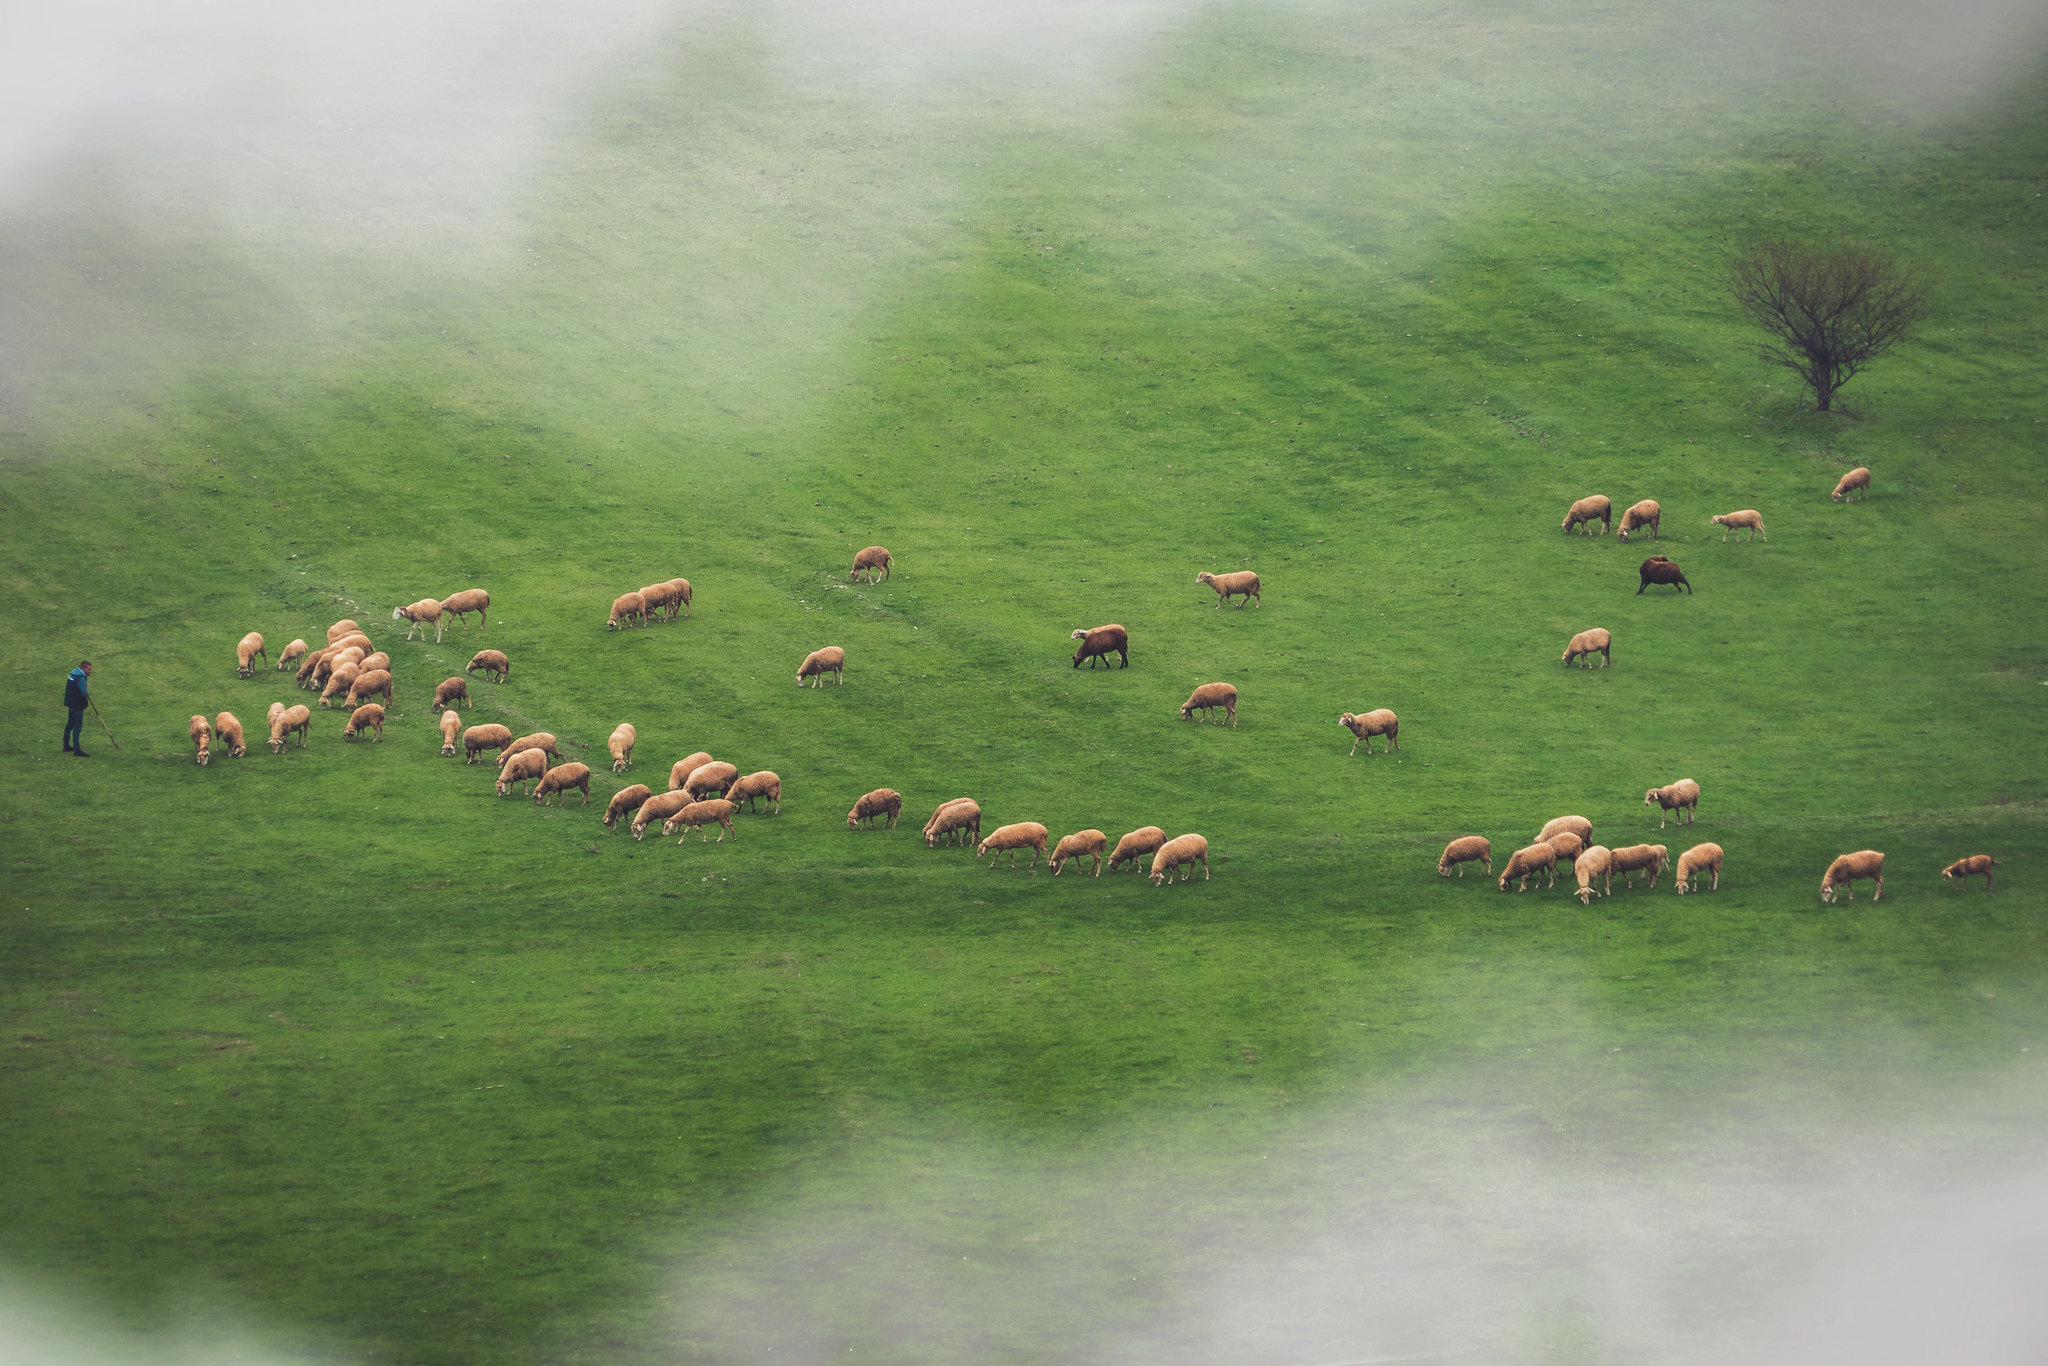 Misty Morning and the herd